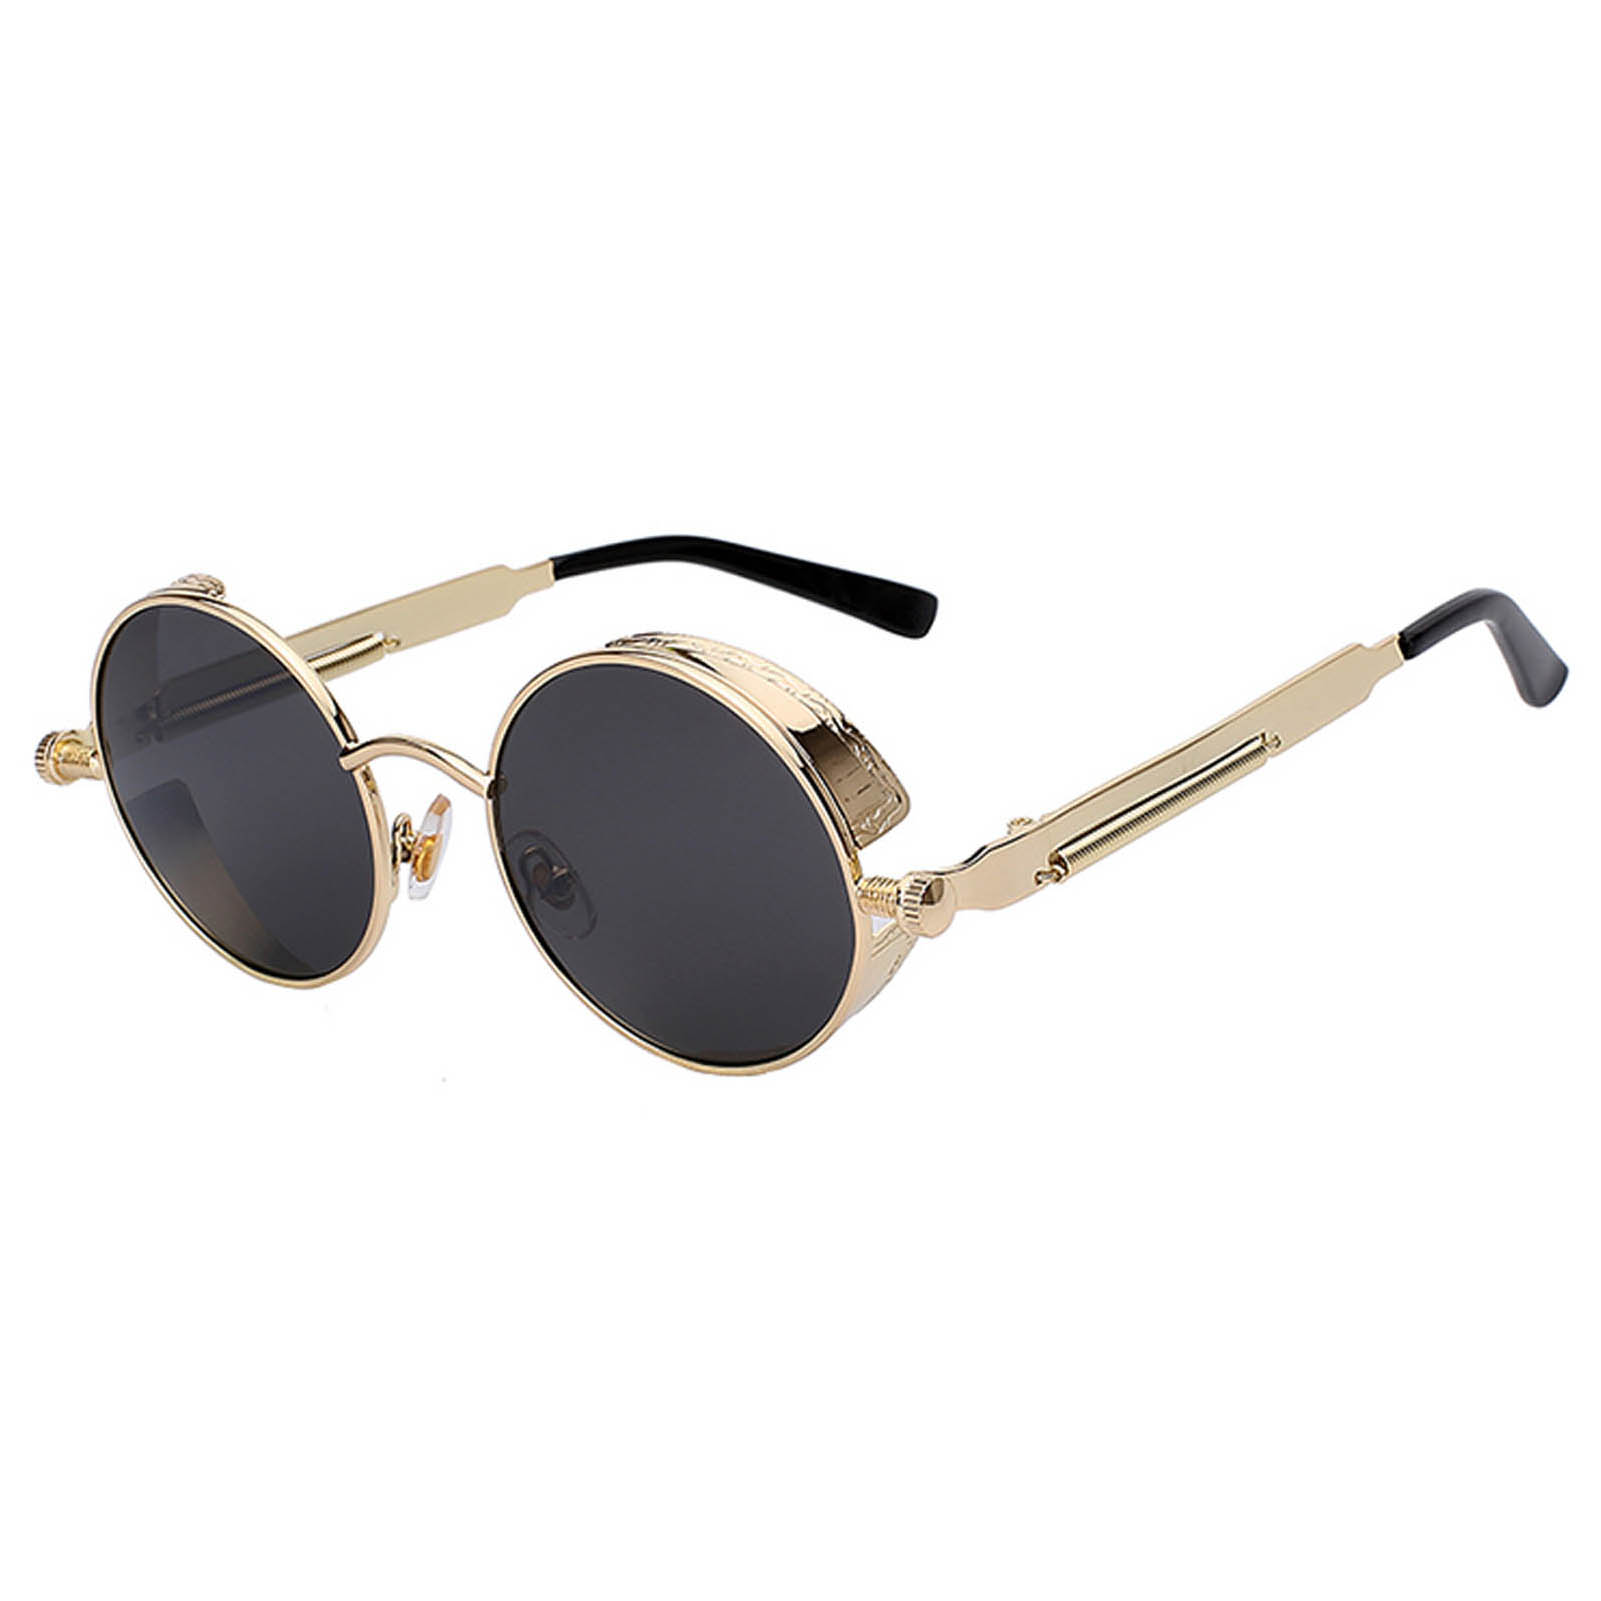 060 C1 Steampunk Gothic Sunglasses Metal Round Circle Gold Frame ...